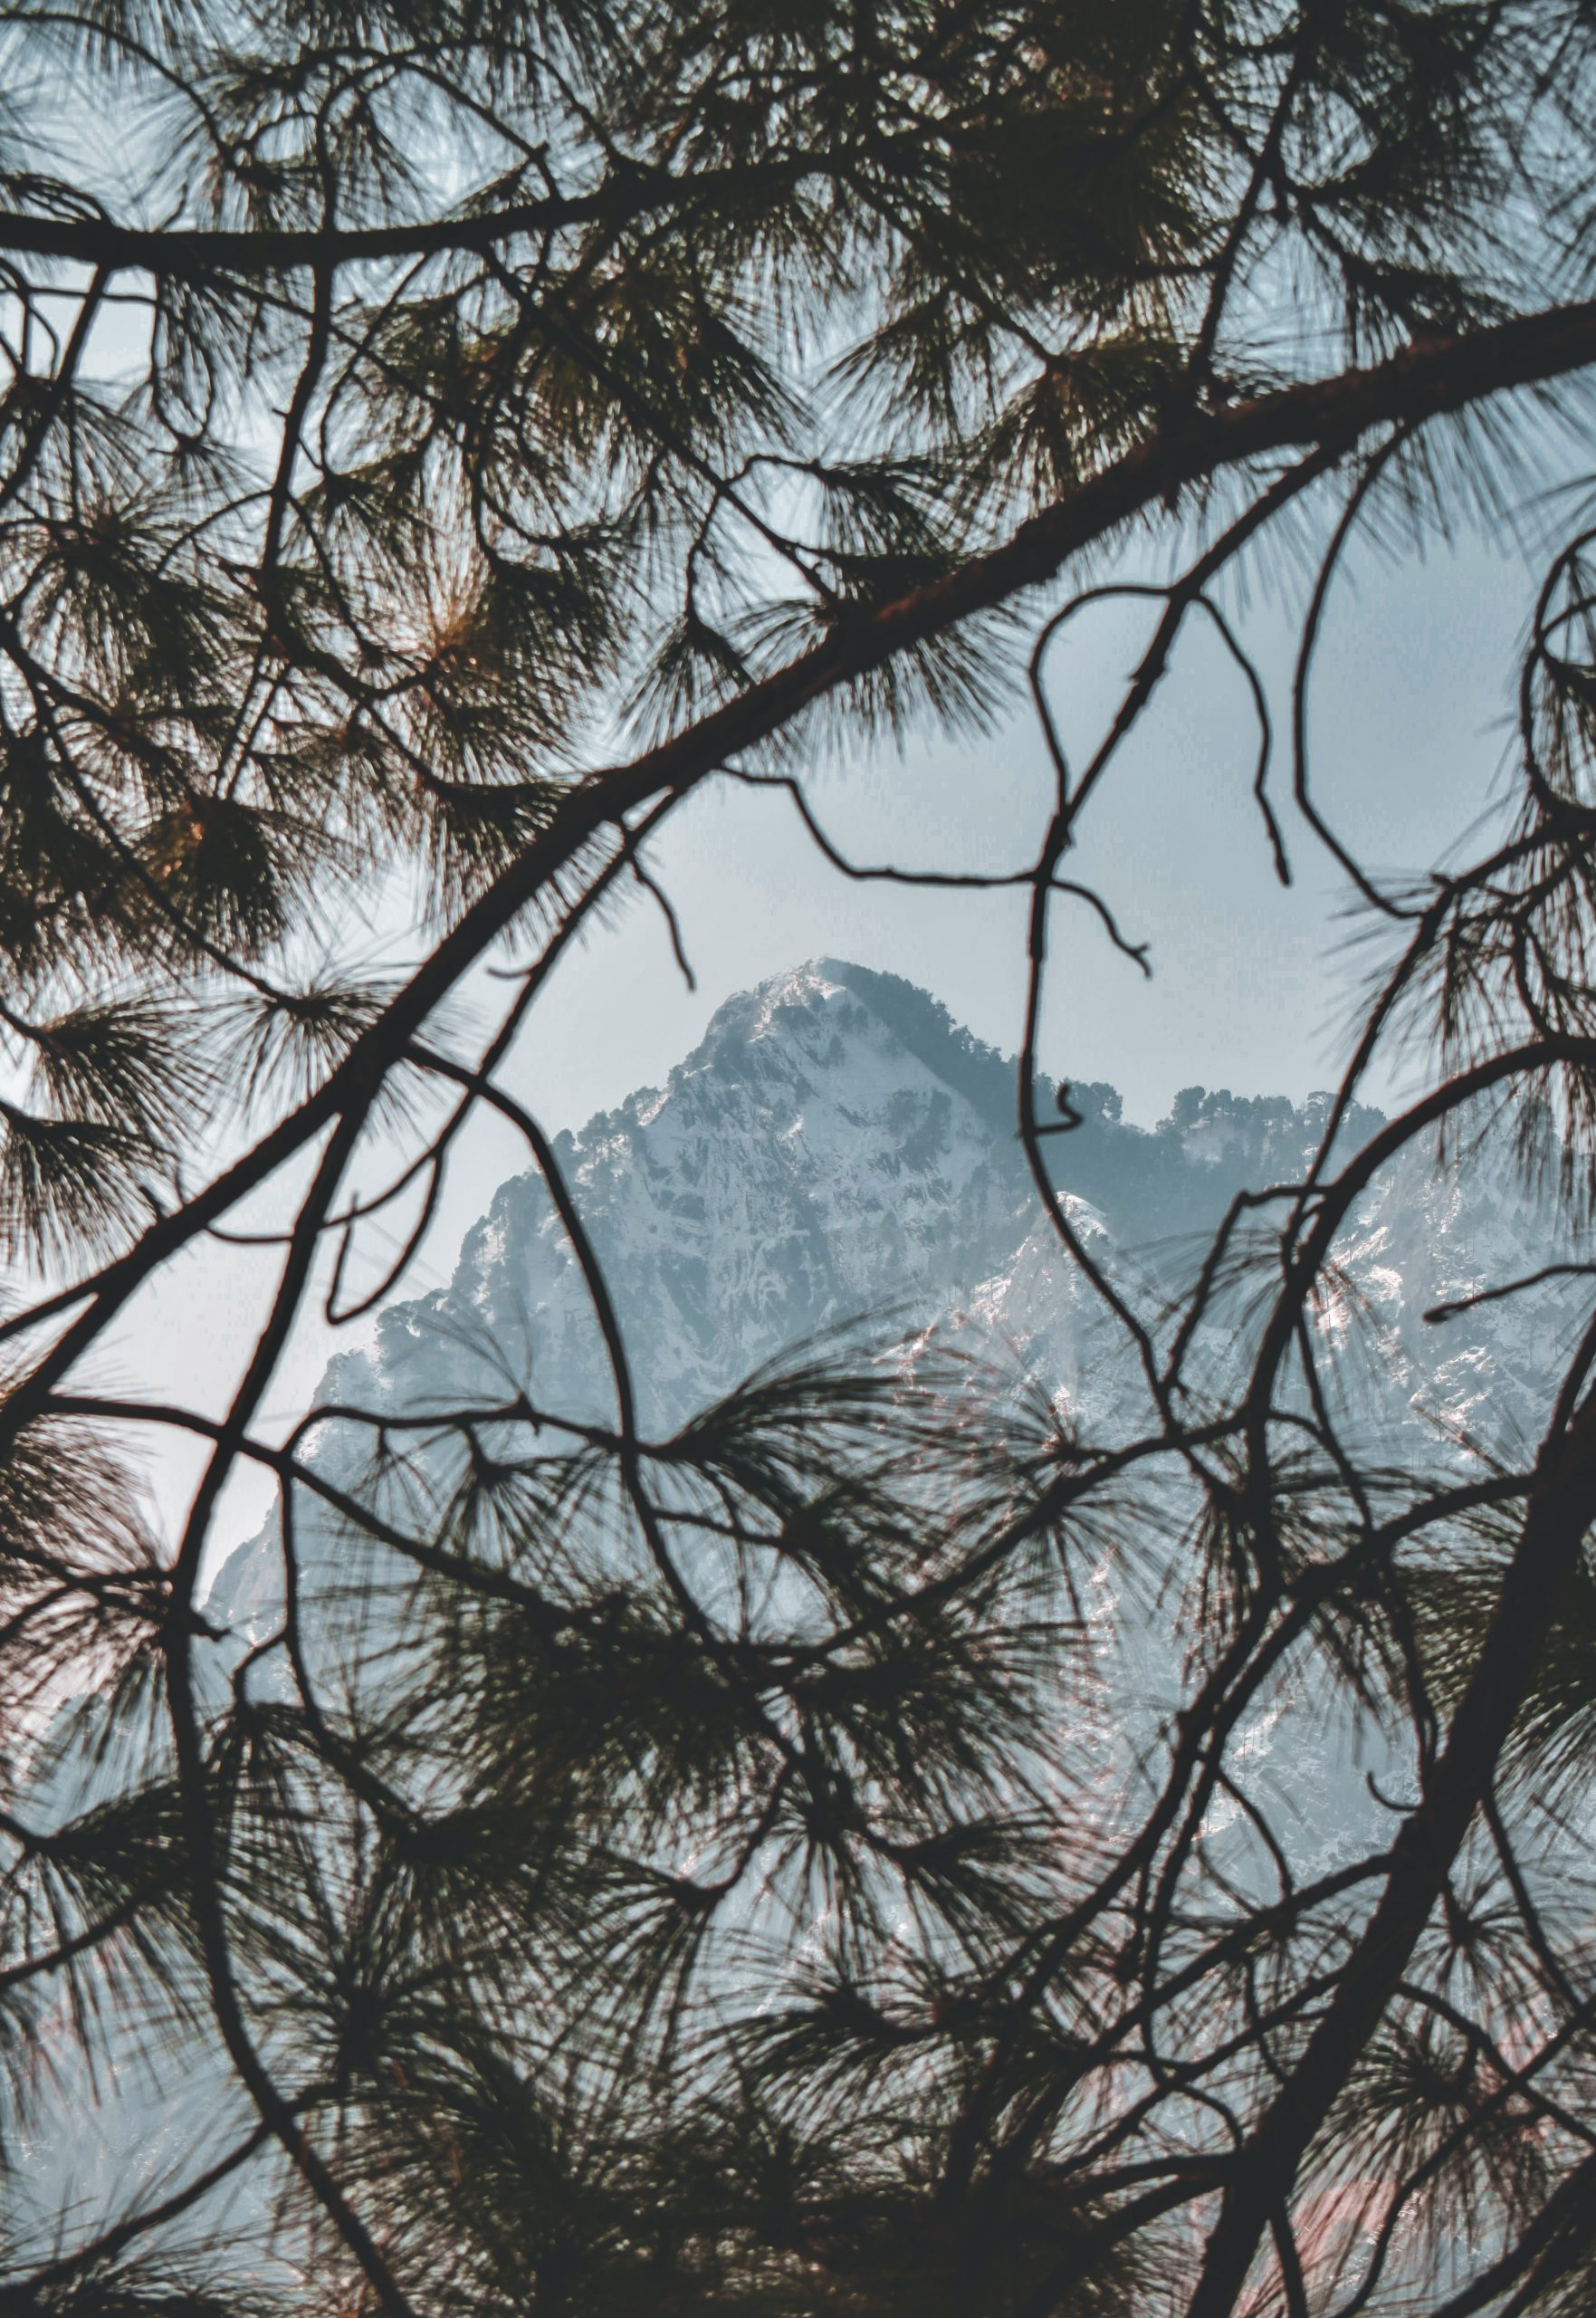 Mountain and pine tree branches